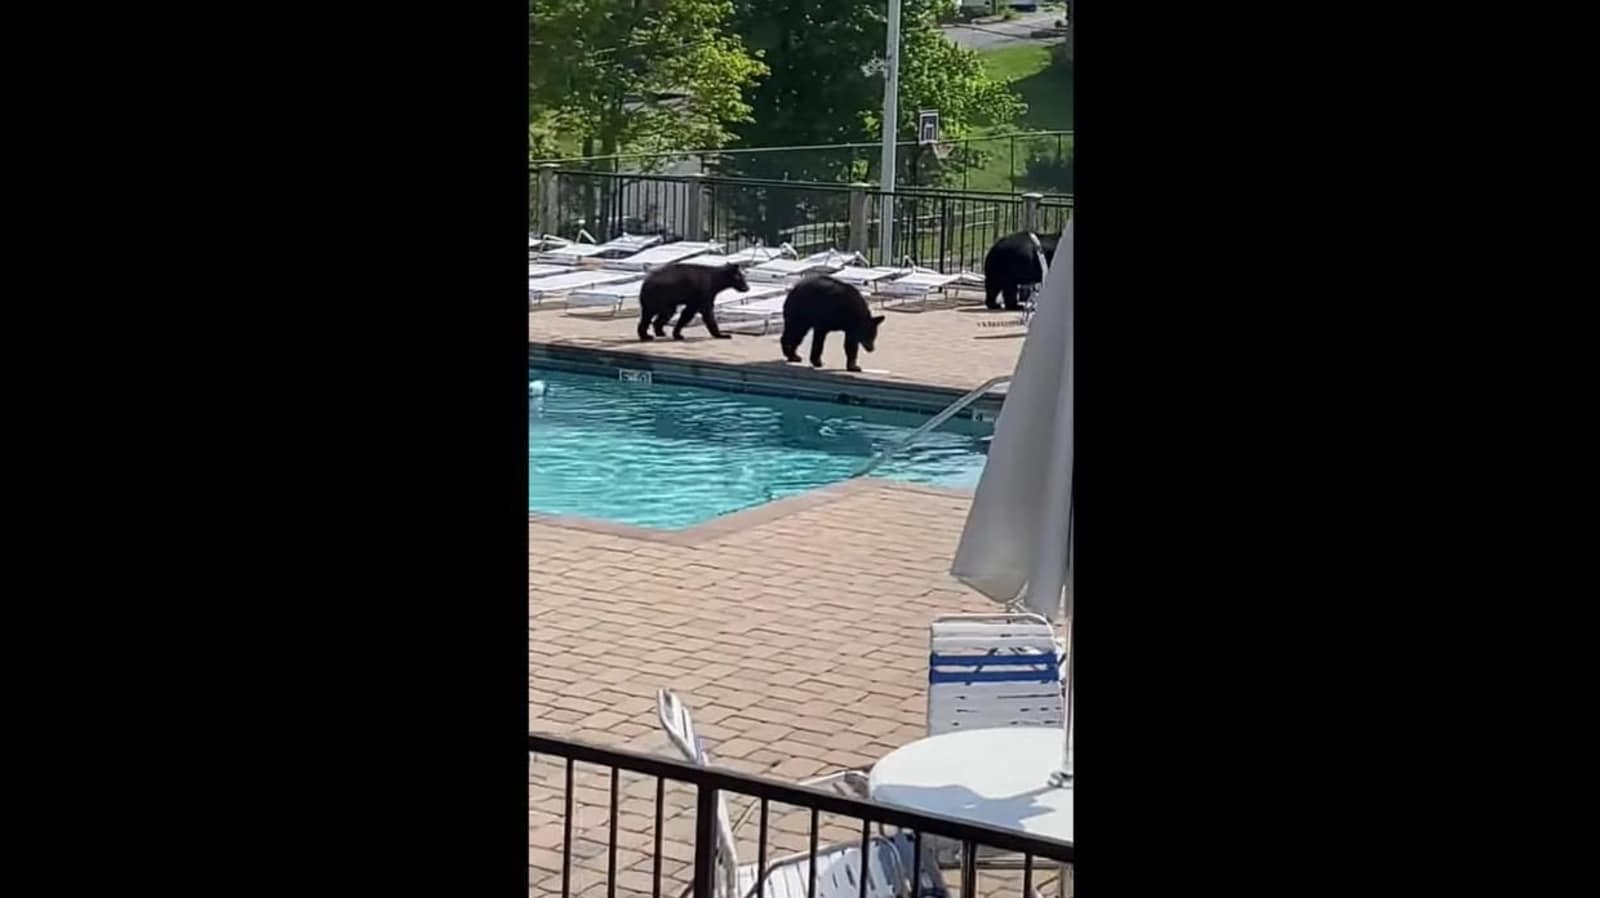 Momma Bear and Cubs Caught Having a Pool Party in Backyard